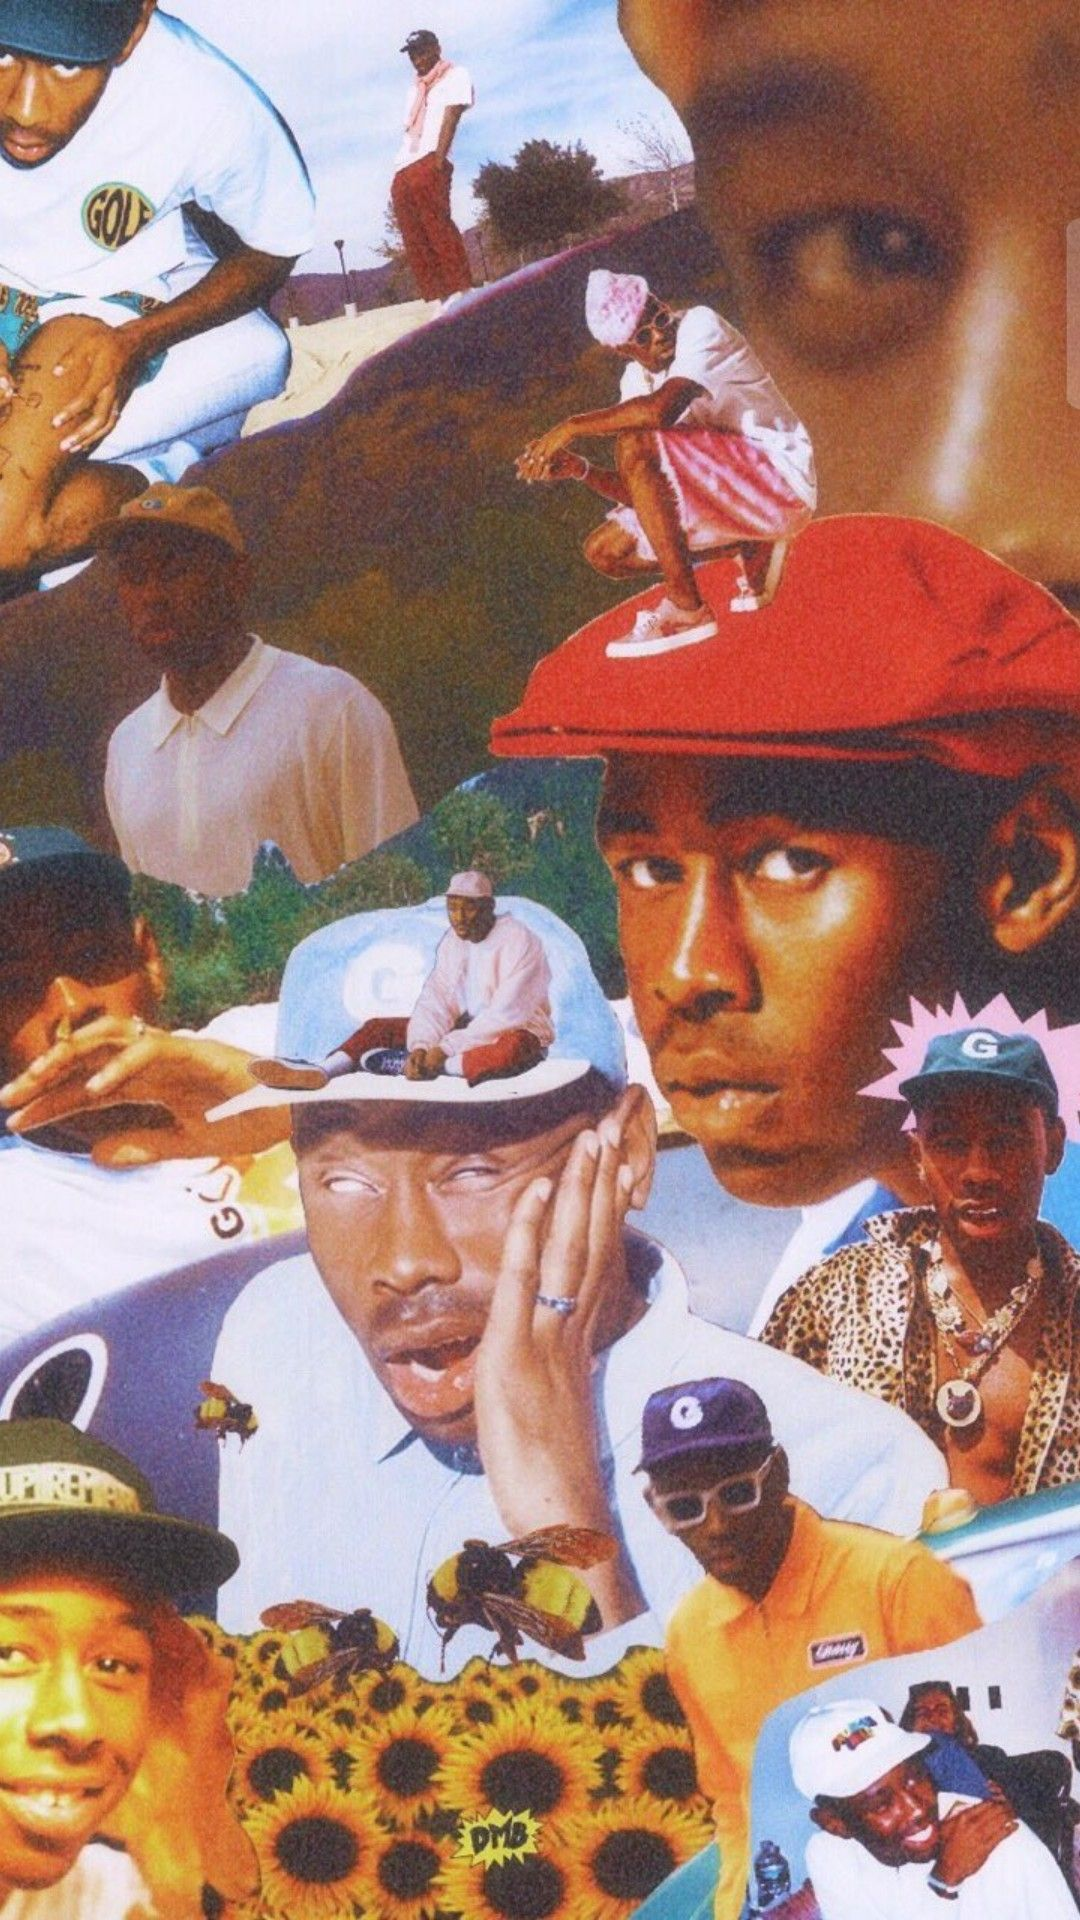 Iceh0tel Tyler The Creator Wallpaper Iphone Wallpaper Vintage Wallpaper Iphone Disney